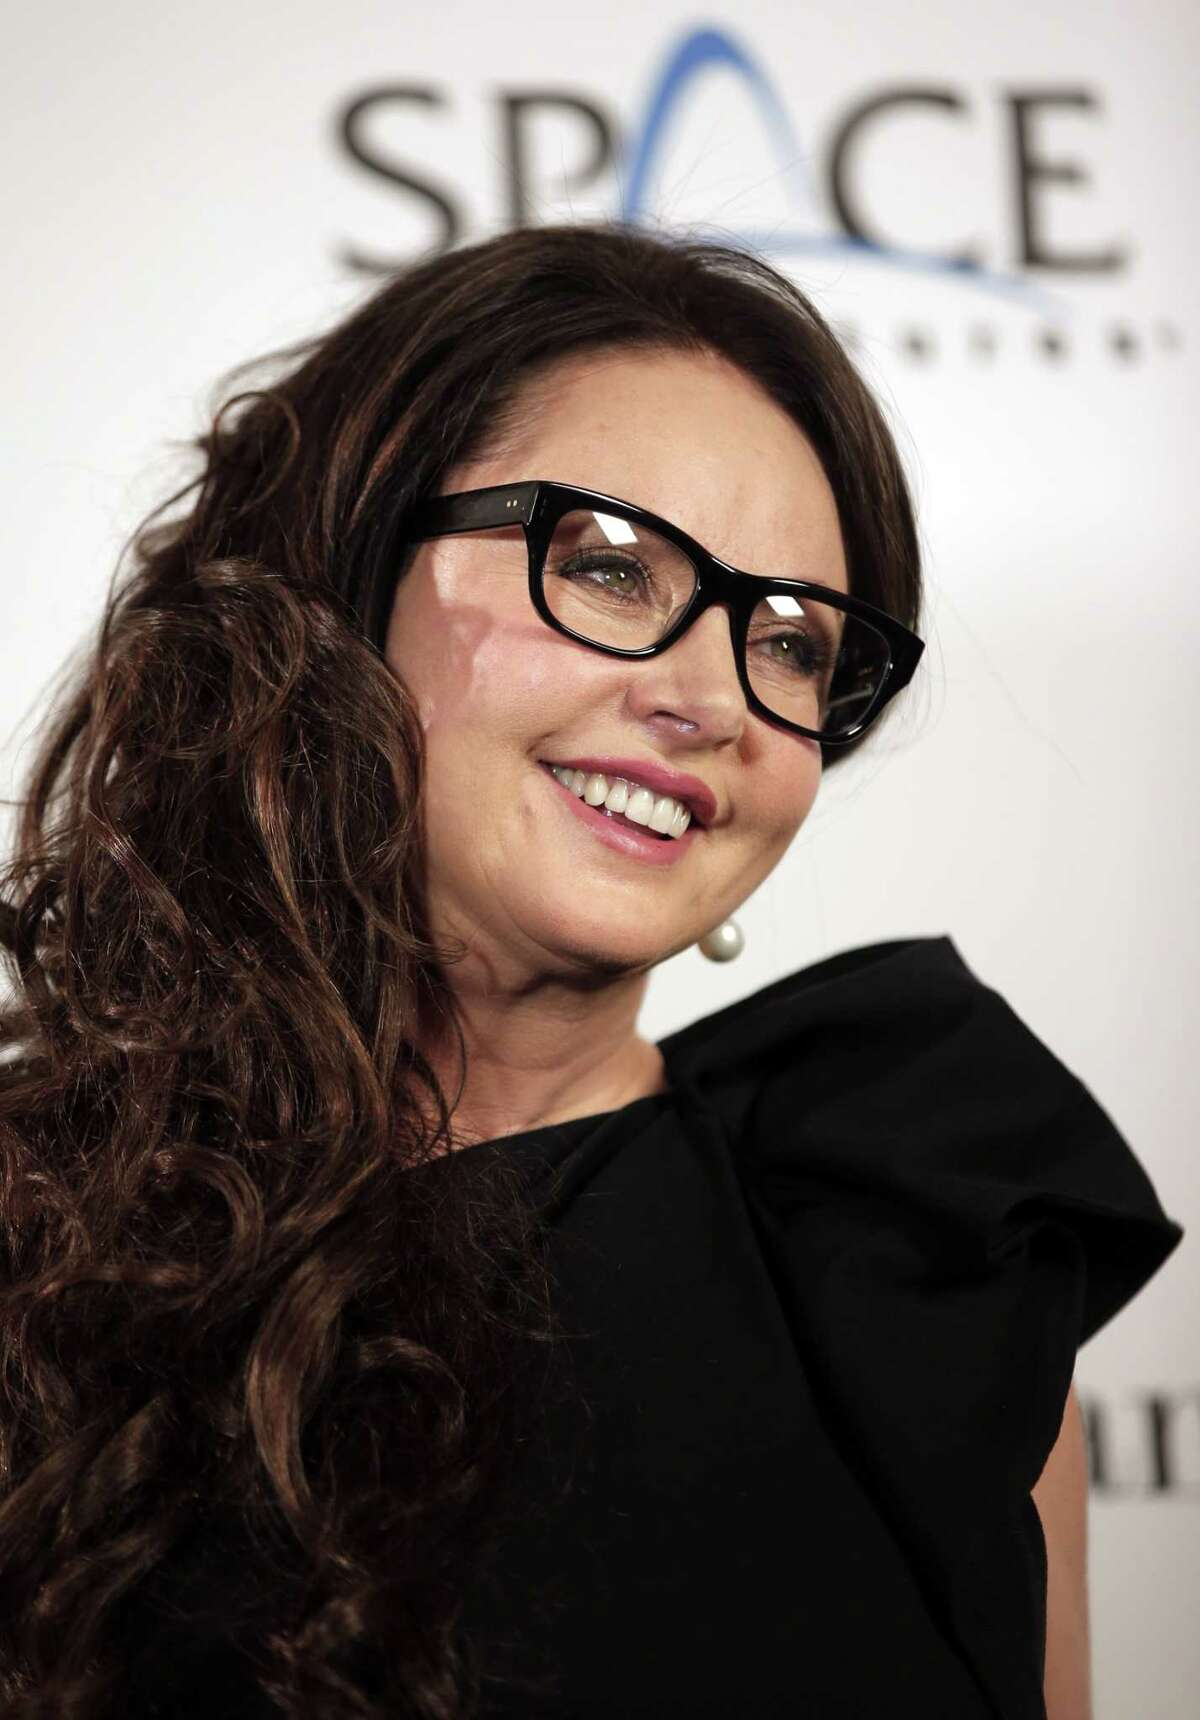 British singer Sarah Brightman poses for the photographers following a news conference, in central London, Tuesday, March 10, 2015. Brightman is scheduled to travel as a space tourist to the International Space Station on a trip scheduled for launch on Sept. 1, 2015. (AP Photo/Lefteris Pitarakis)